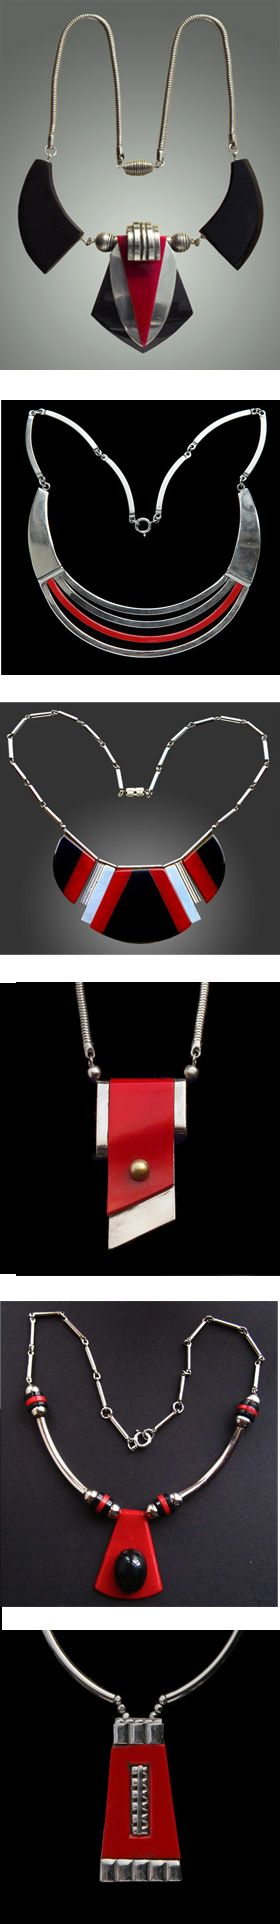 Jakob Bengel Art Deco necklaces, 1930s, Germany, Galalith plastic (similar to bakelite) and chrome. (Uploaded by Retroworx, most images from http://www.tademagallery.co.uk)